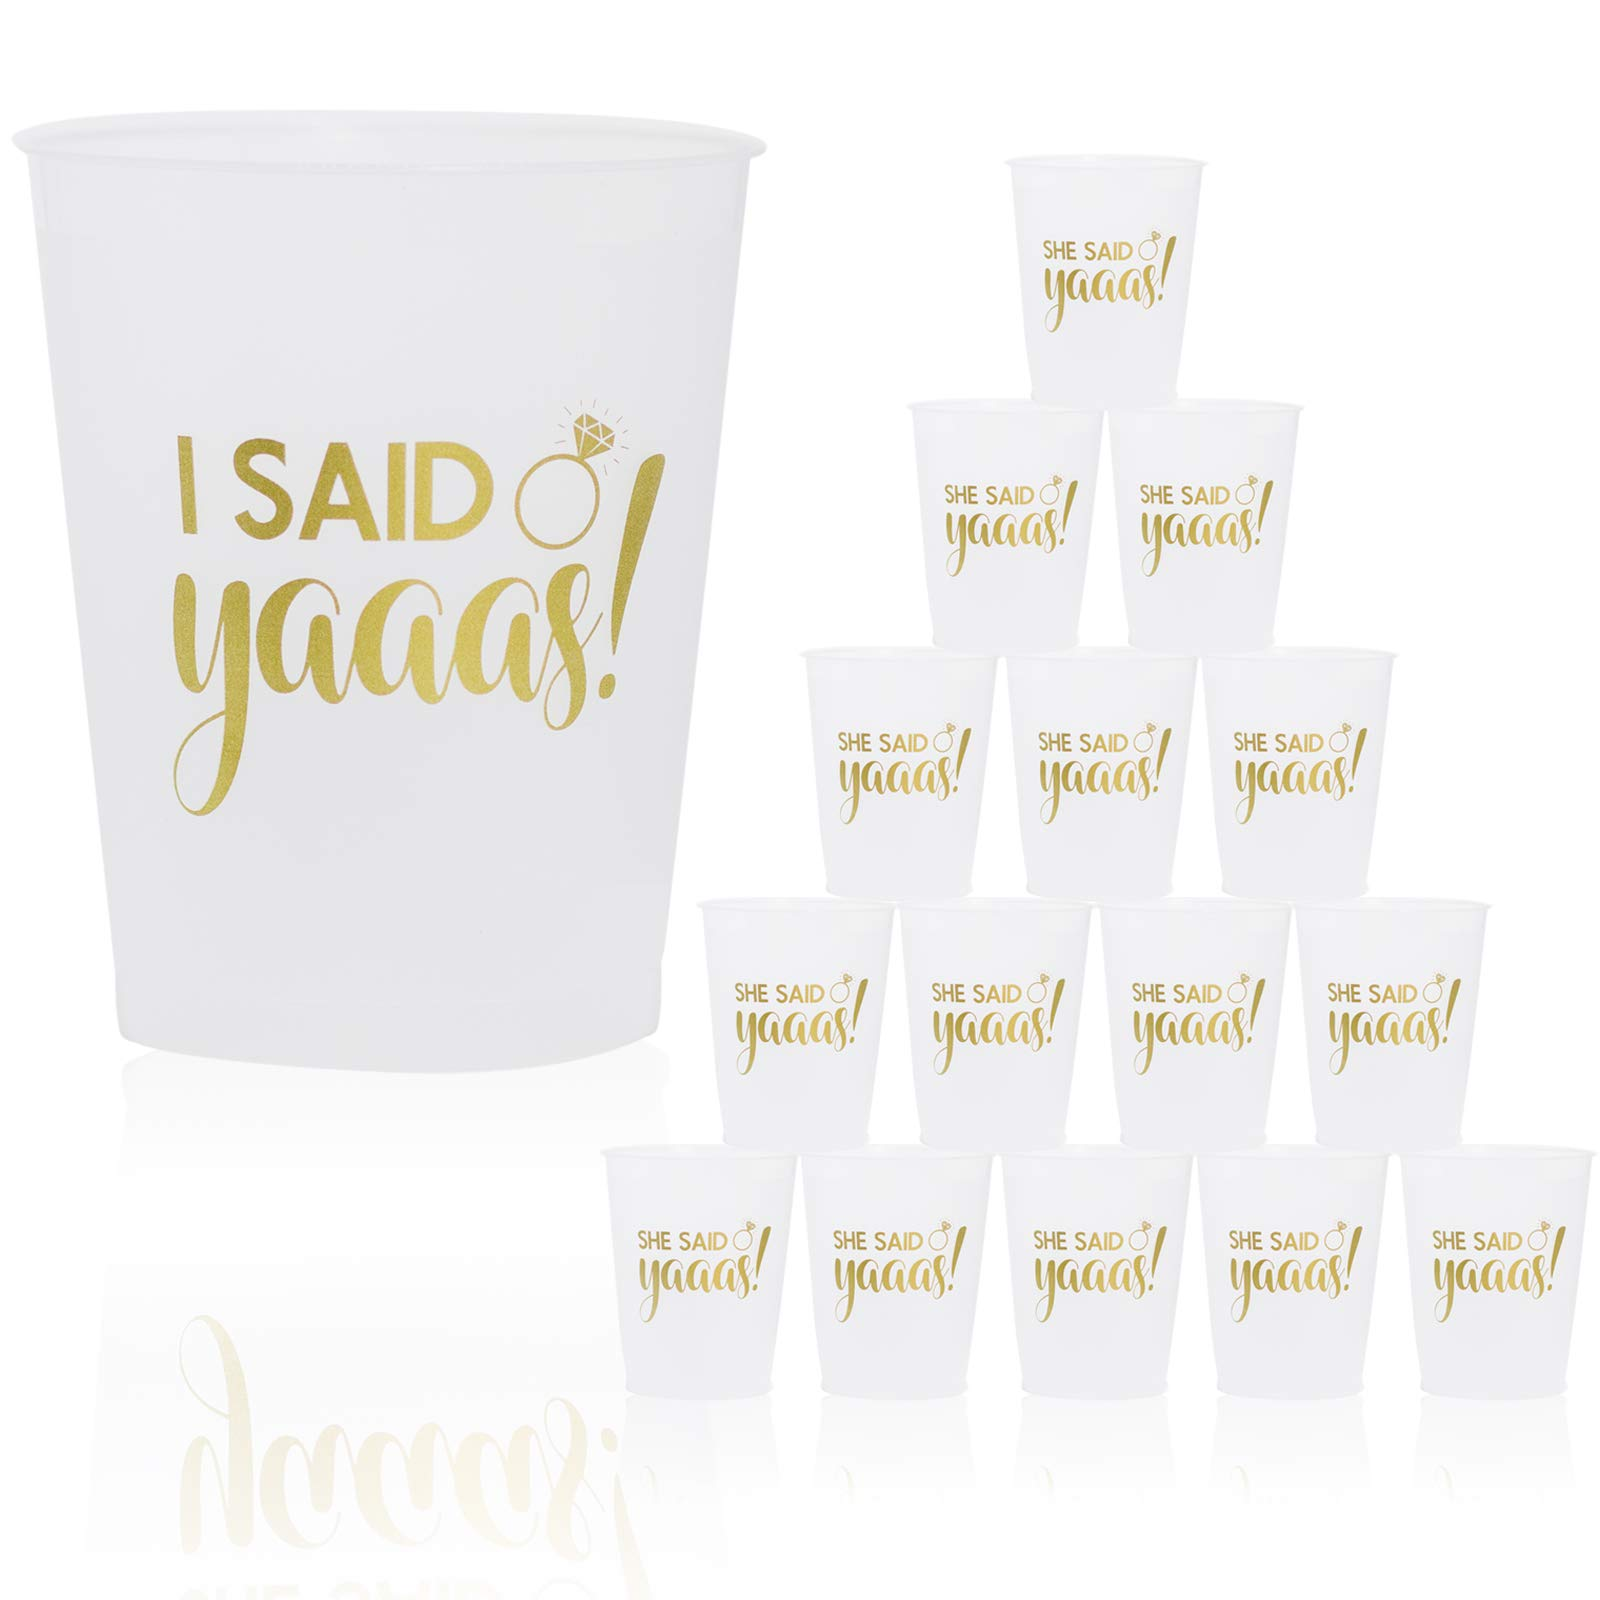 She Said Yaaas Bachelorette Party Cups Supplies for Weddings, Bridal Showers, Engagement Parties Decorations - 17 PACK 16 Oz. Cup for Bride Tribe Decor - Bride To Be Gifts & Party Favors